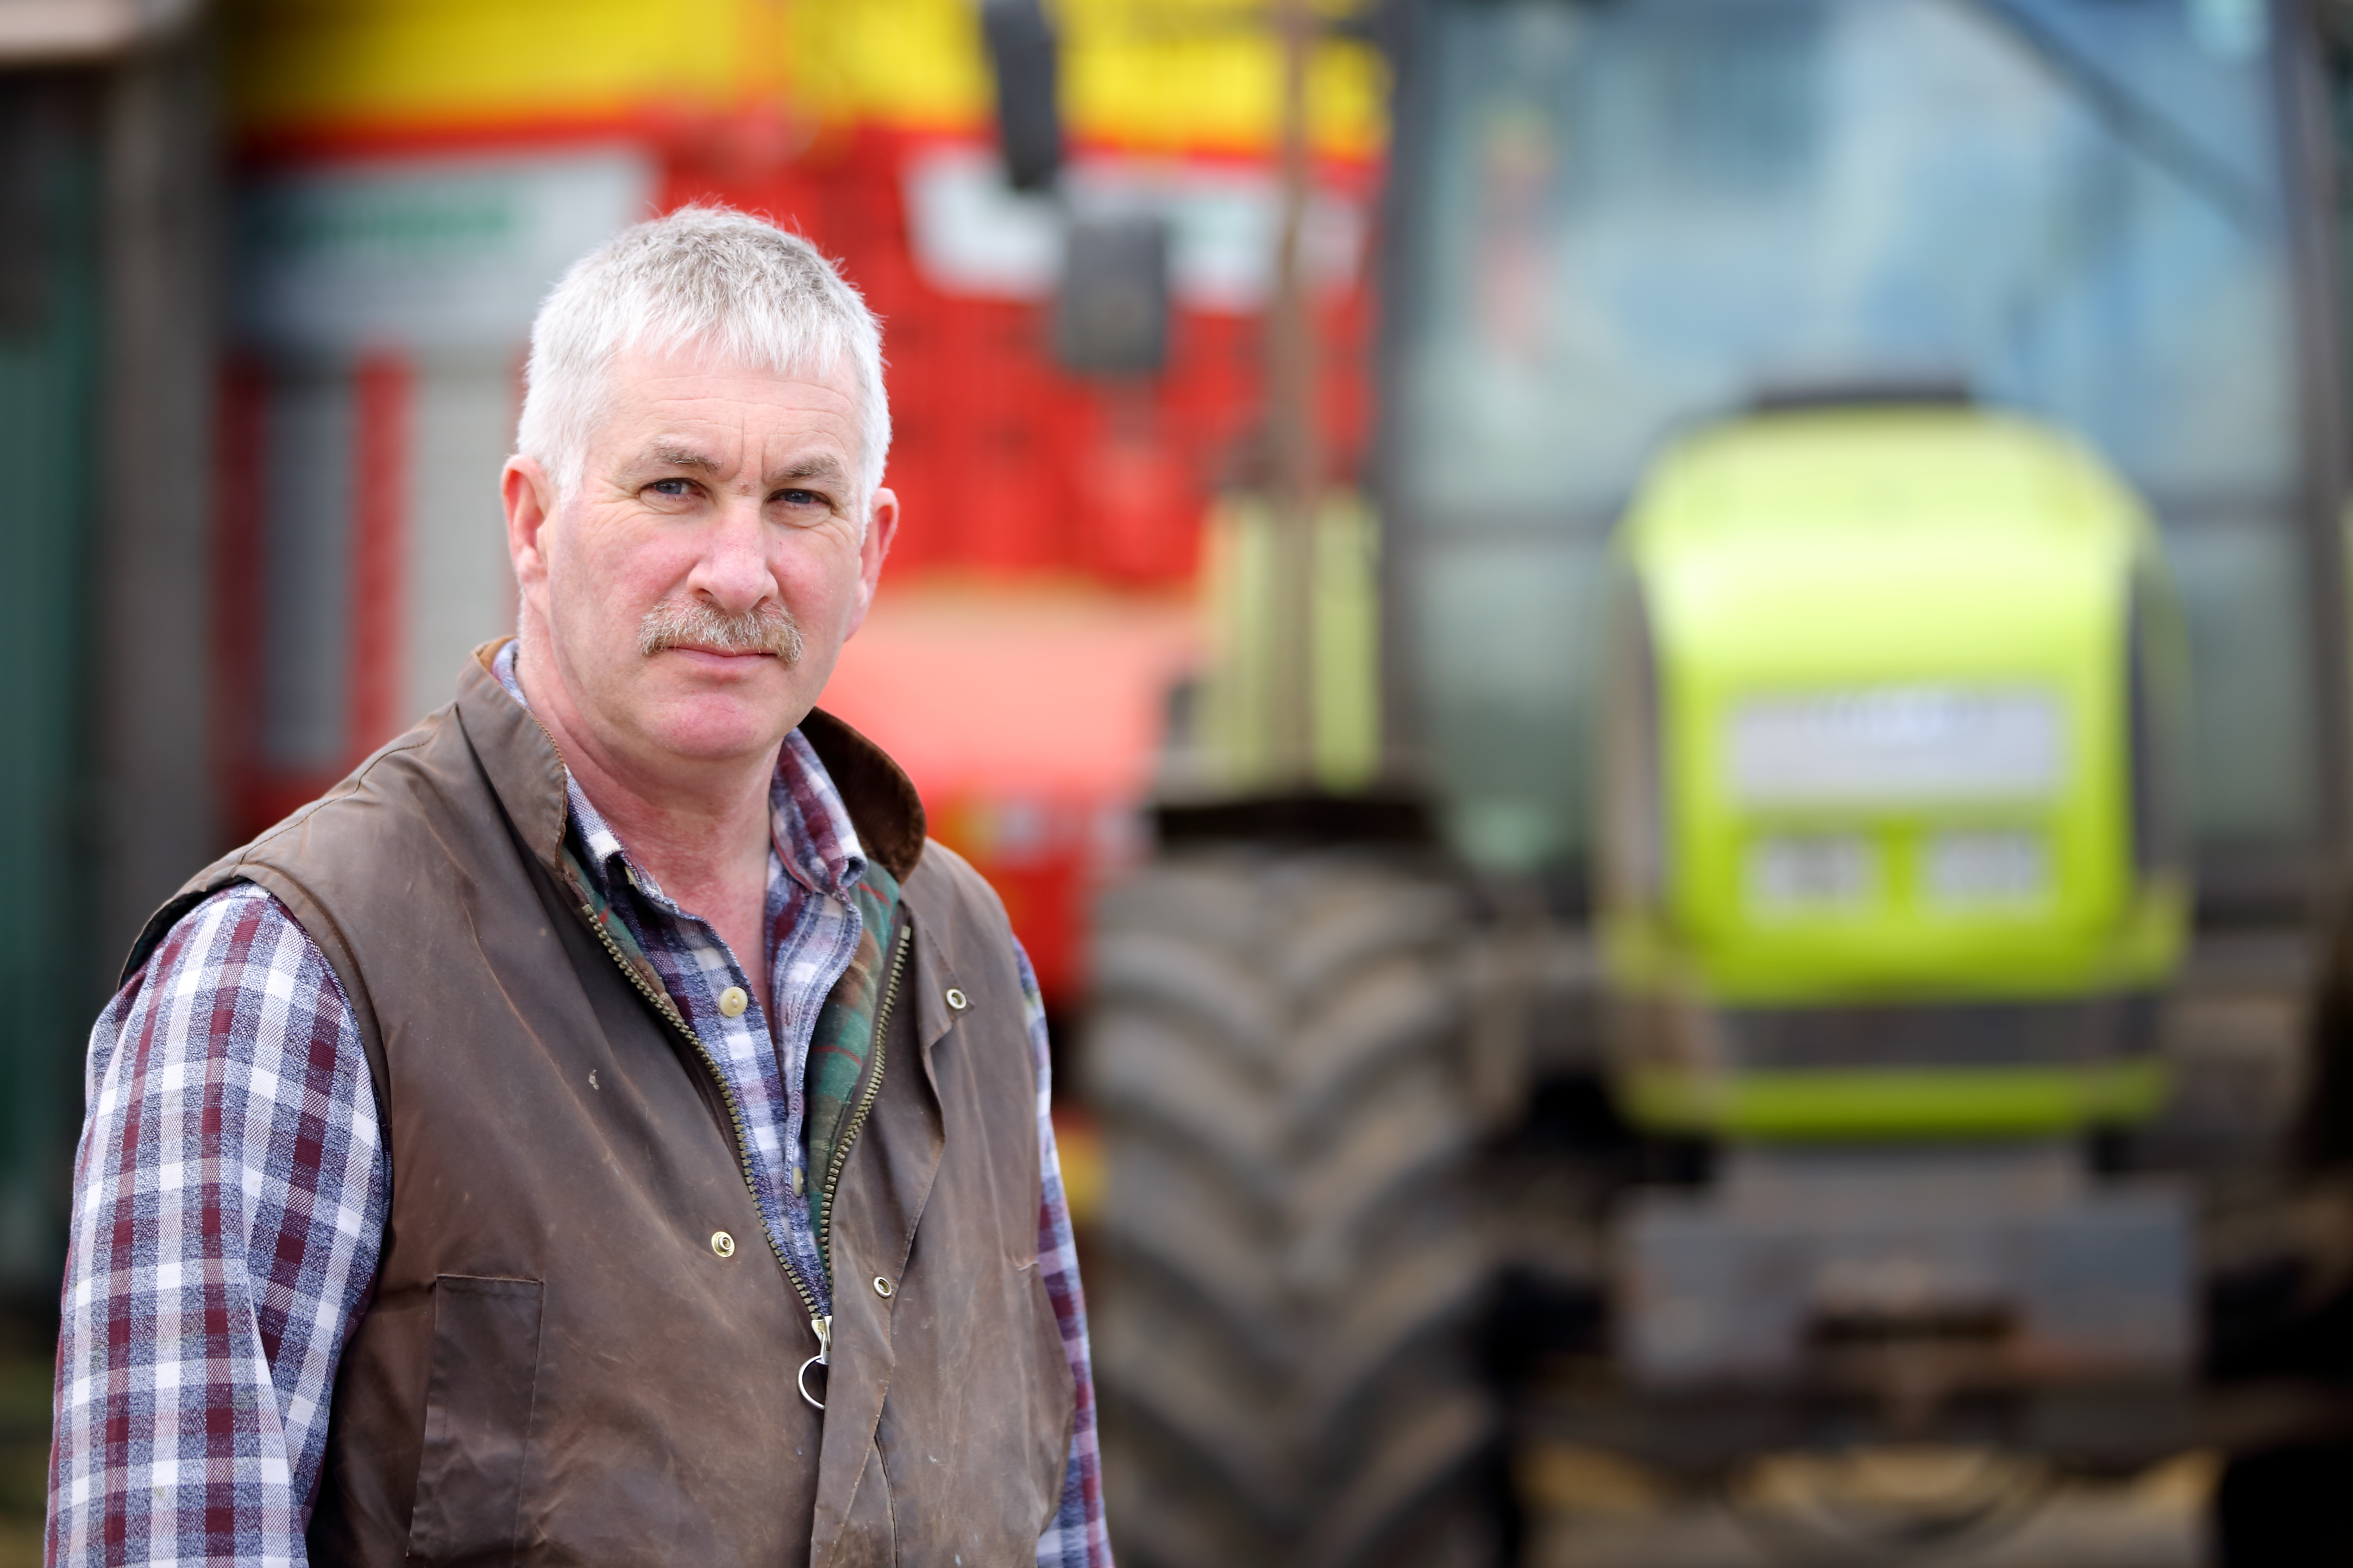 UFU alarmed at new climate change info